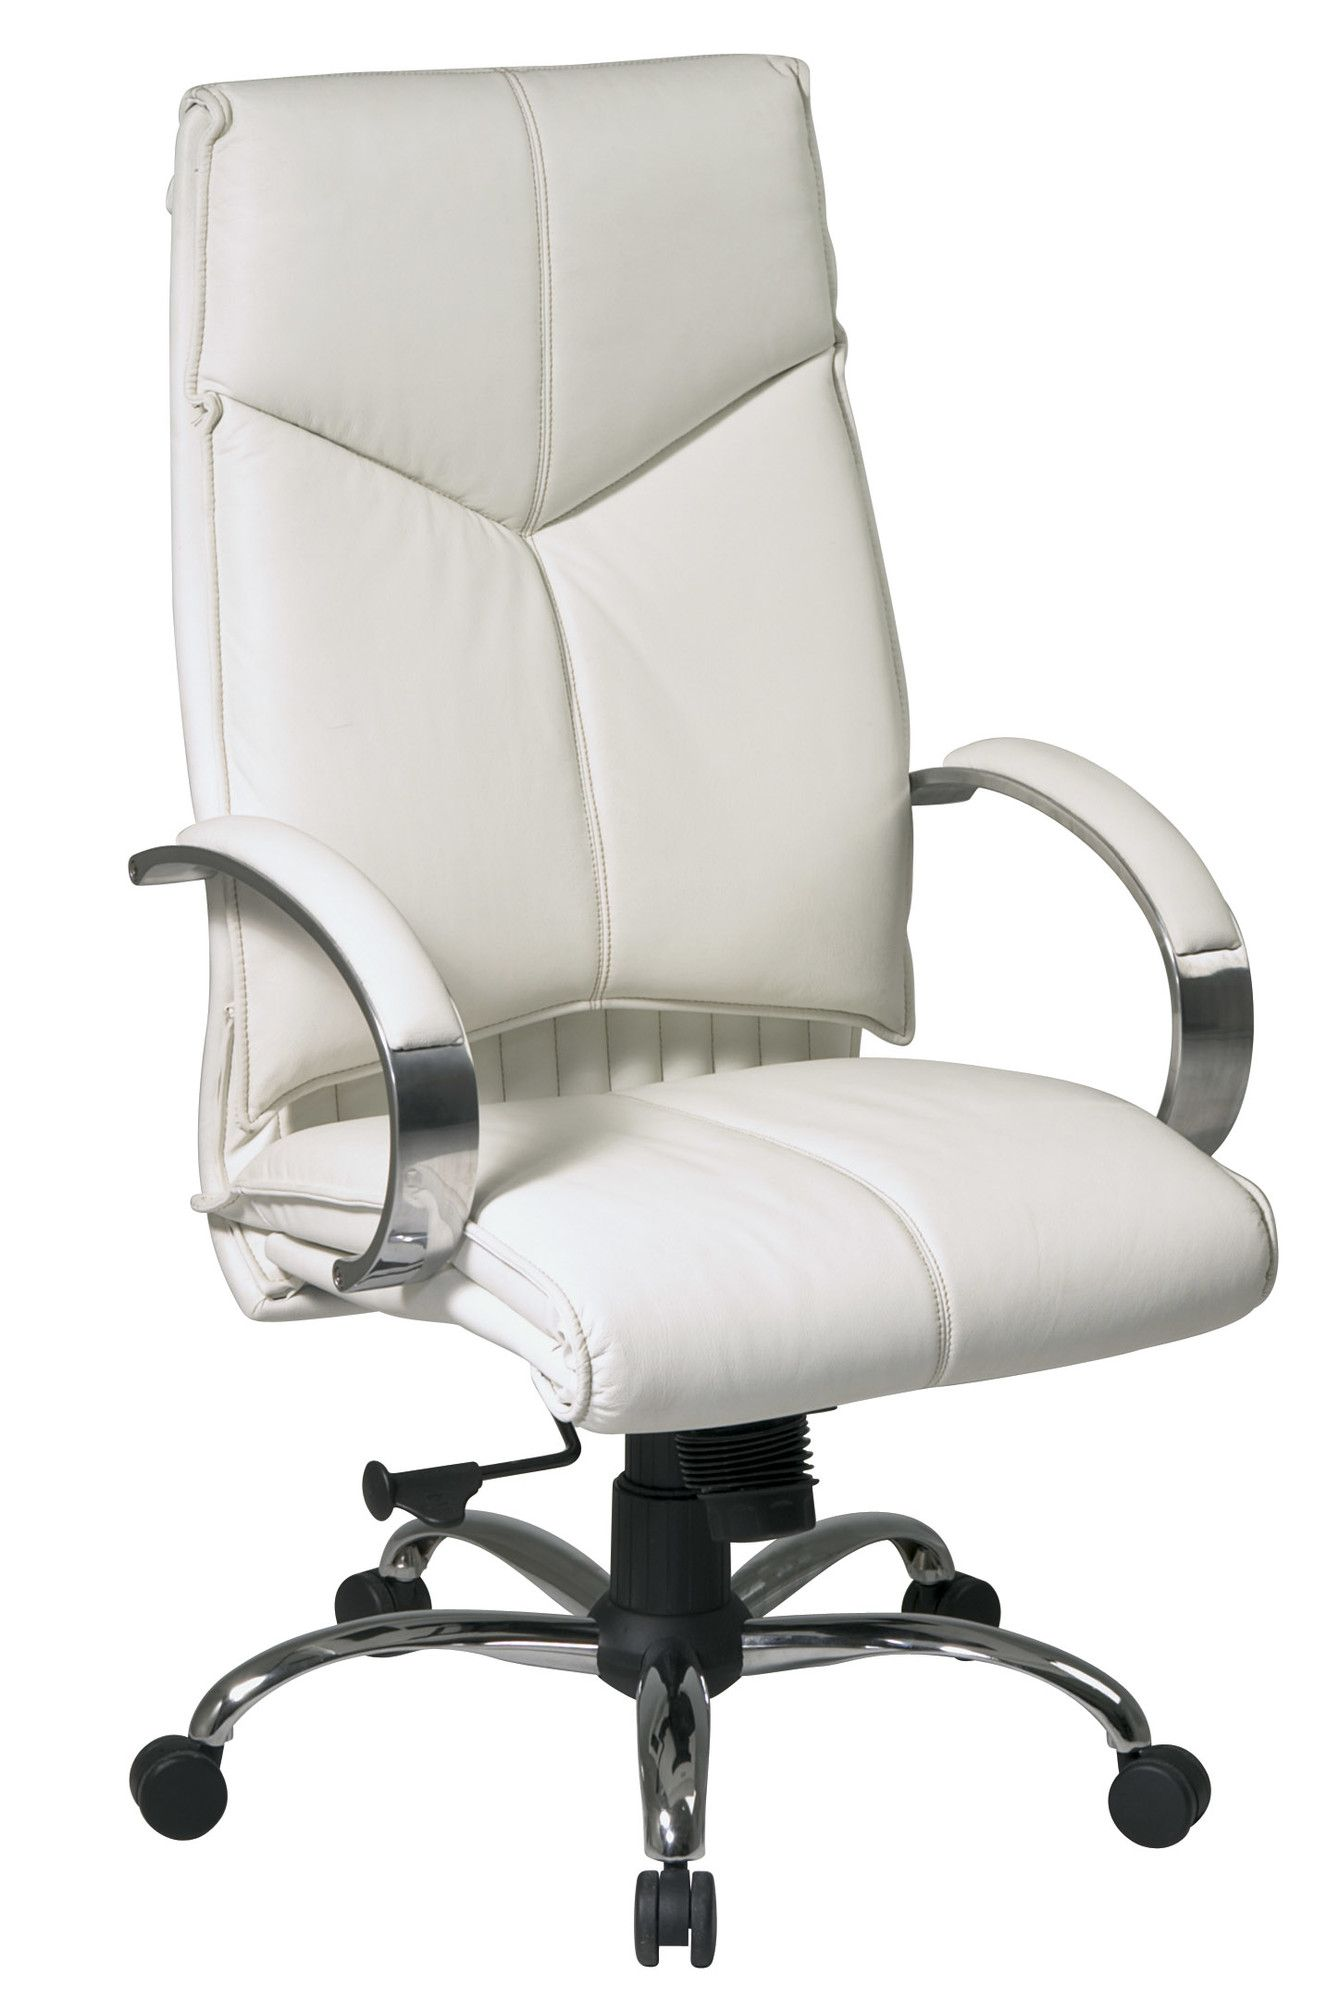 This Was Least Expensive White High Back Chair I Could Find That Had Real Leather Great P White Leather Chair